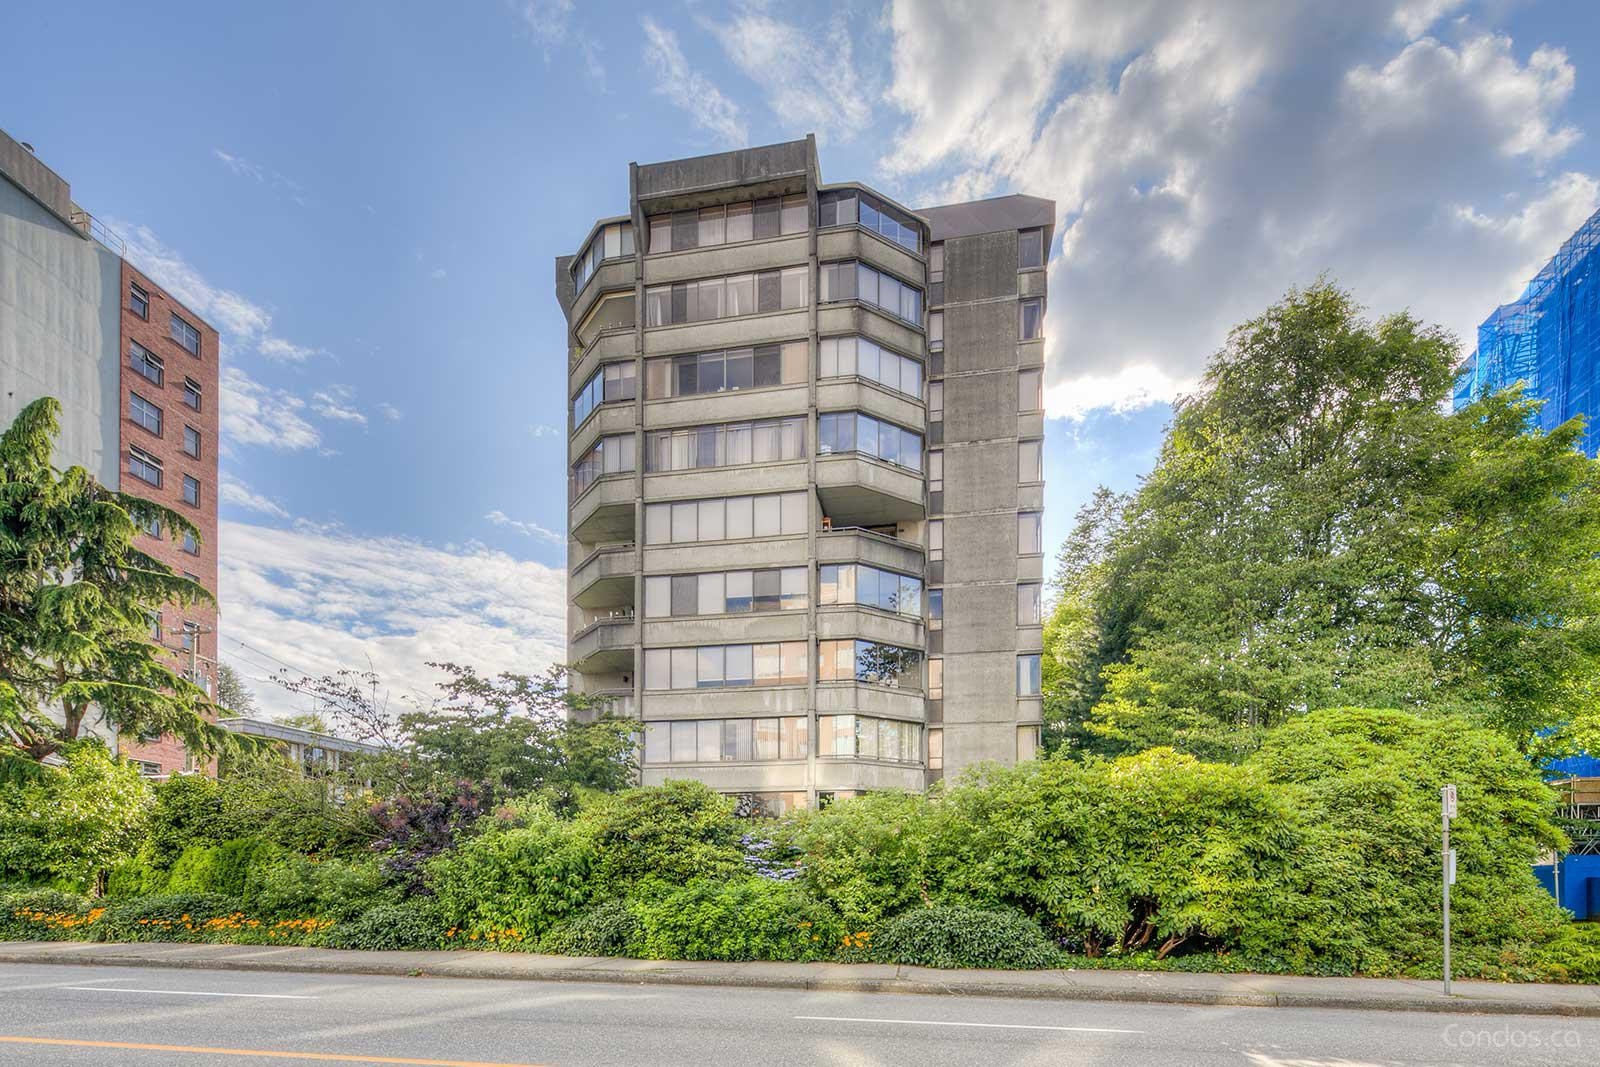 Granville Gardens at 1616 W 13th Ave, Vancouver 1